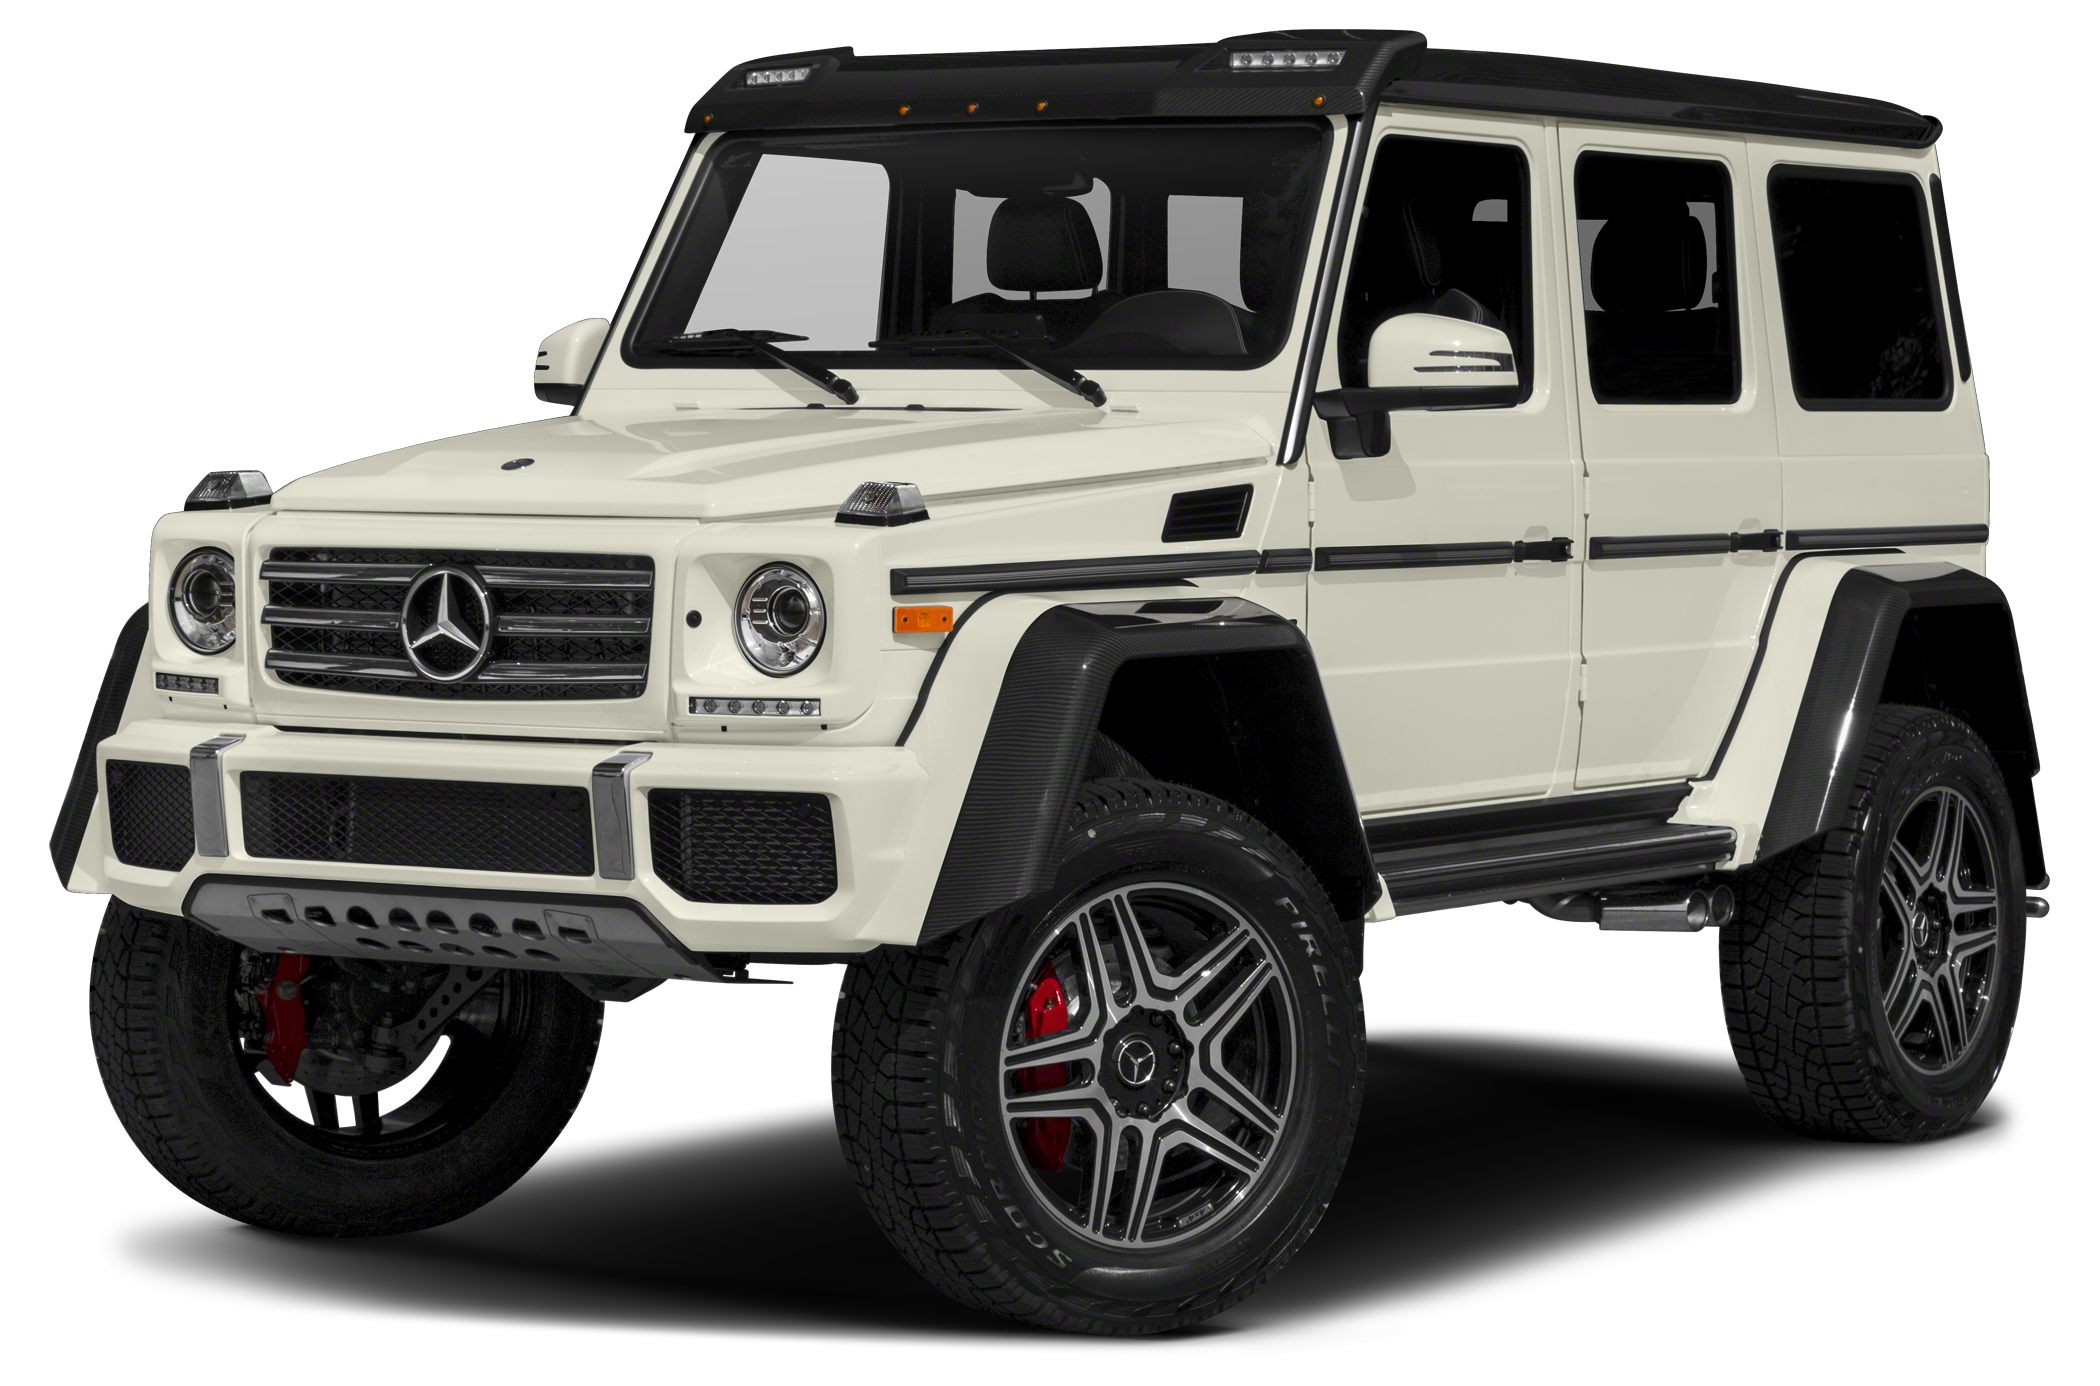 Mercedes Benz G550 4x4 Squared News Photos And Buying